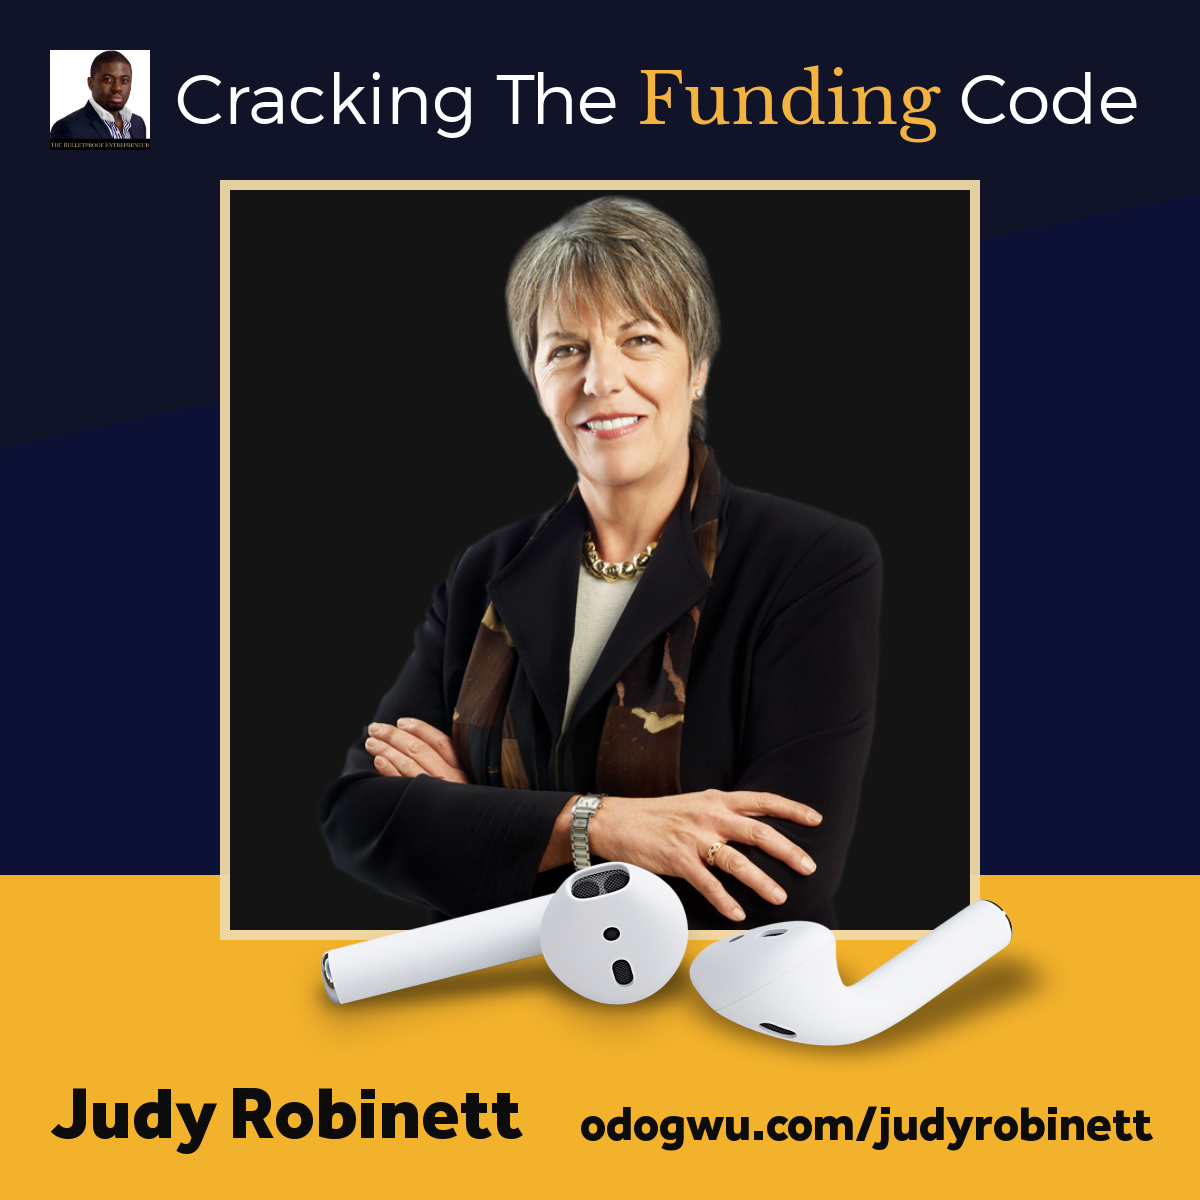 Cracking The Funding Code With Judy Robinett